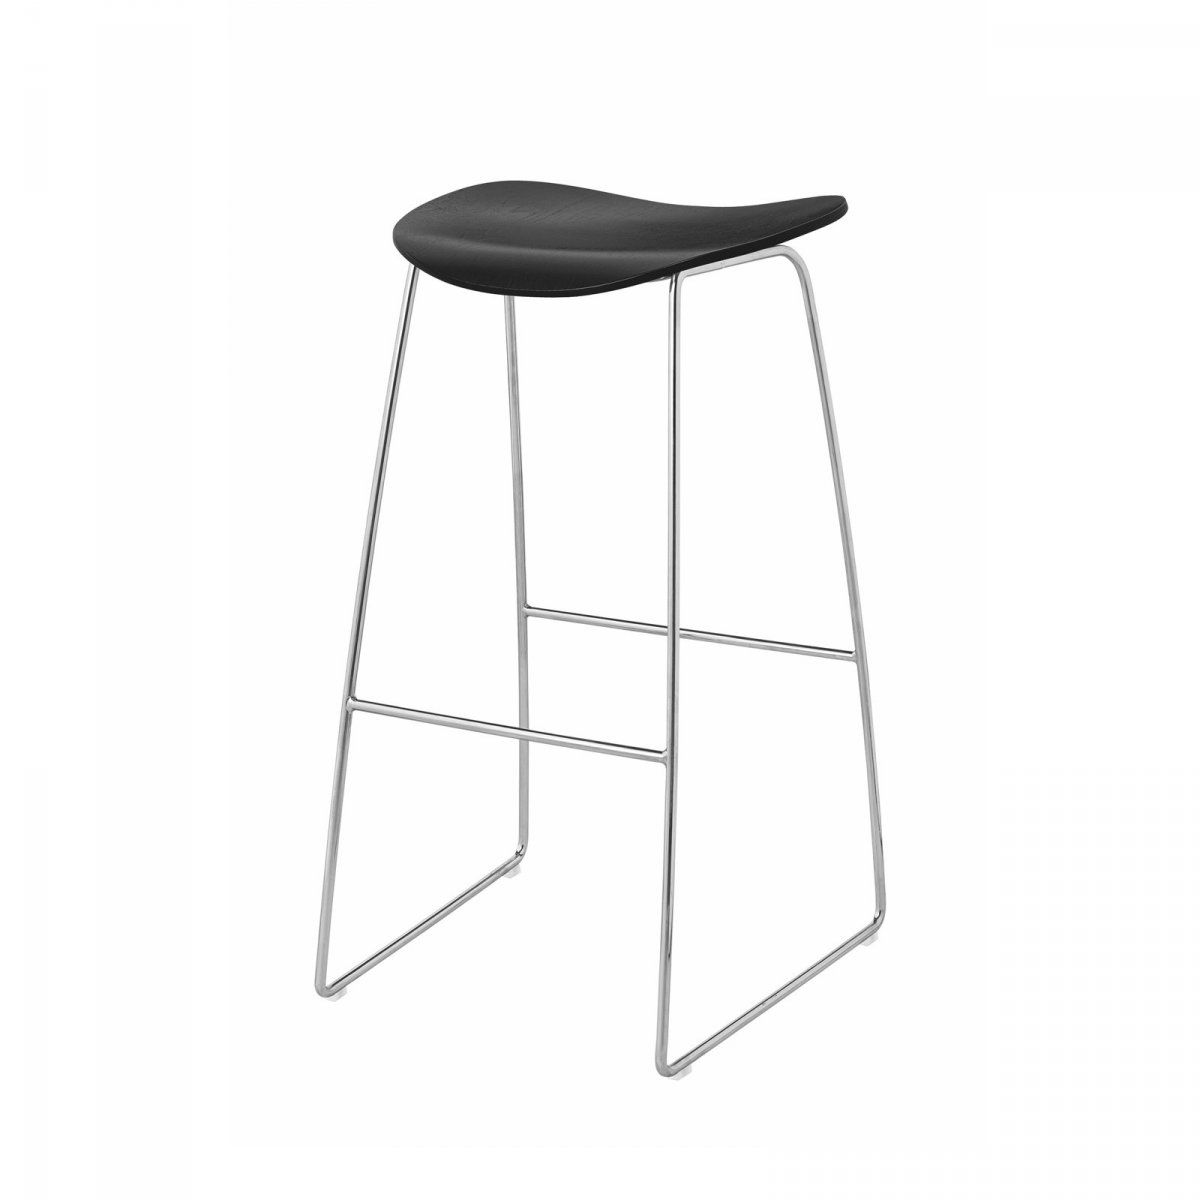 Gubi 2D Stool Sled Base, black + chrome.